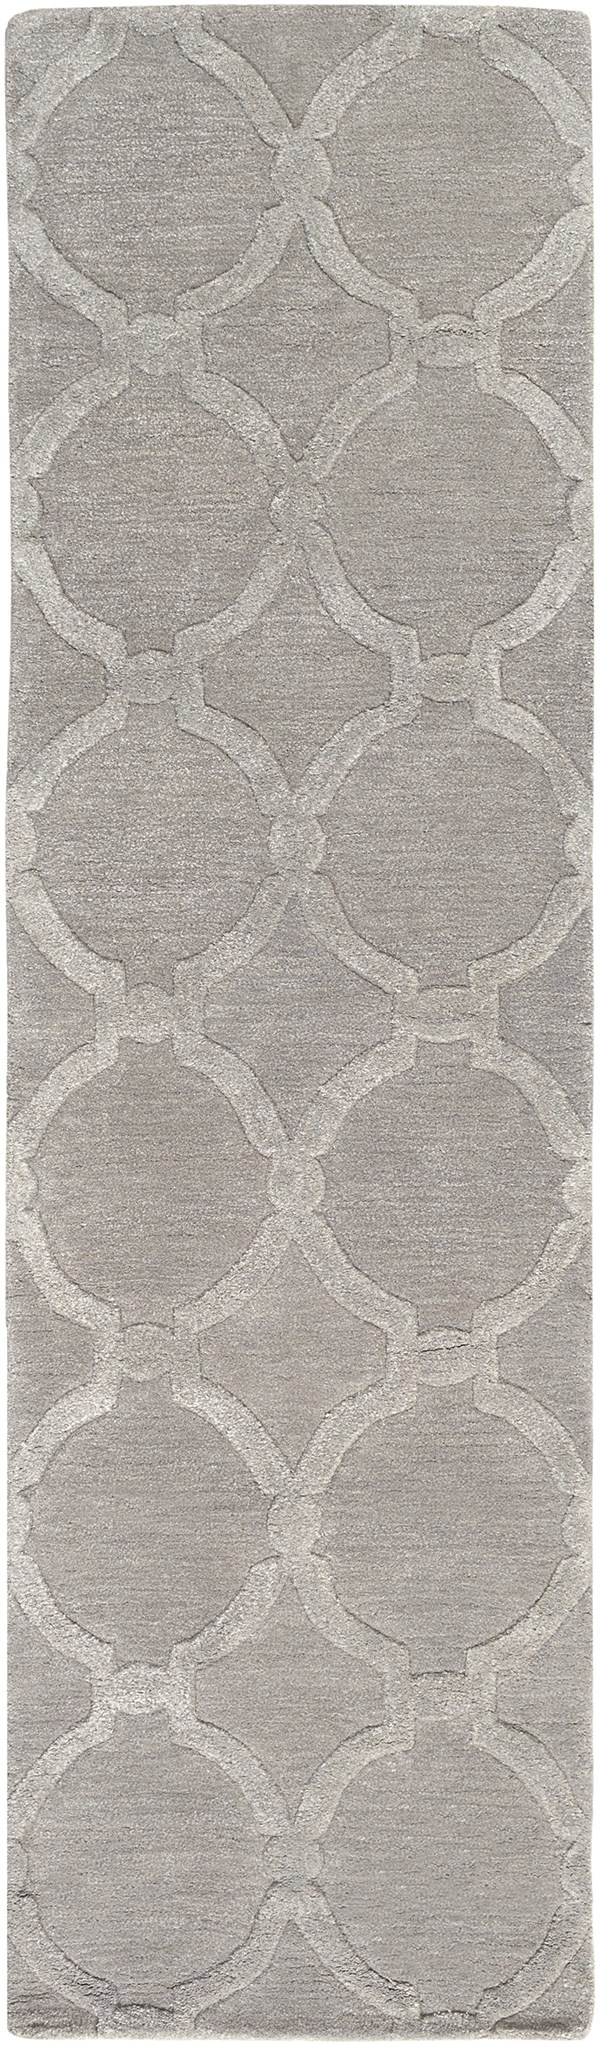 Gray (AWUB-2144) Textured Solid Area Rug